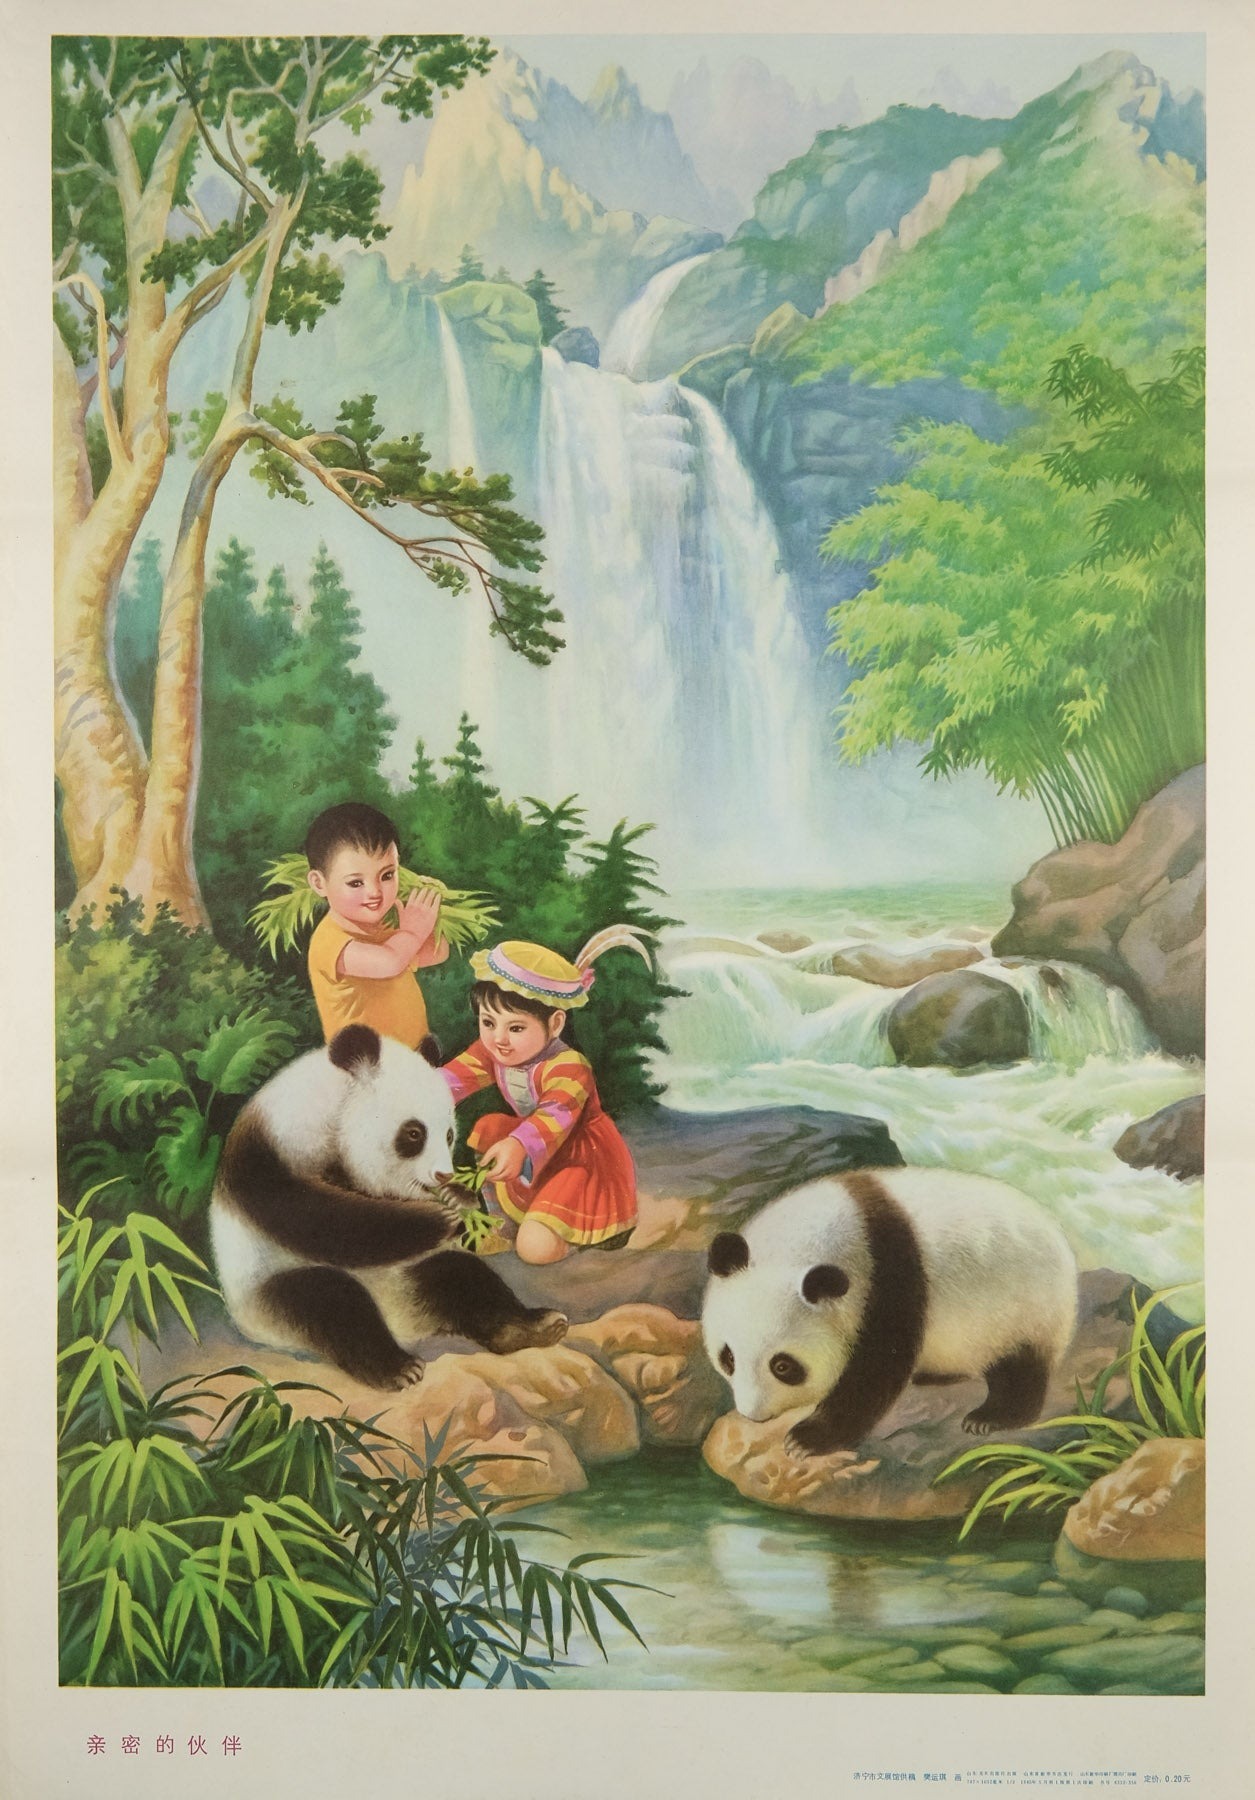 image of the original vintage 1985 Chinese communist propaganda poster by Fan Yunqi titled Close companions published by Shandong Fine Art Publishing House